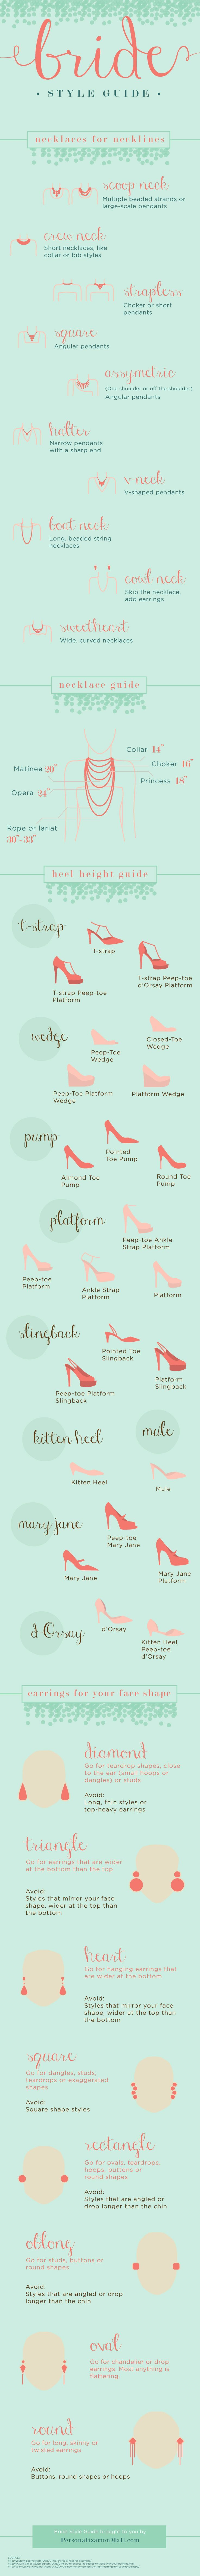 Check out this awesome bridal accessory guide that helps you find the perfect jewelry and shoes for your Wedding Day! www.stelladot.com/paolaking